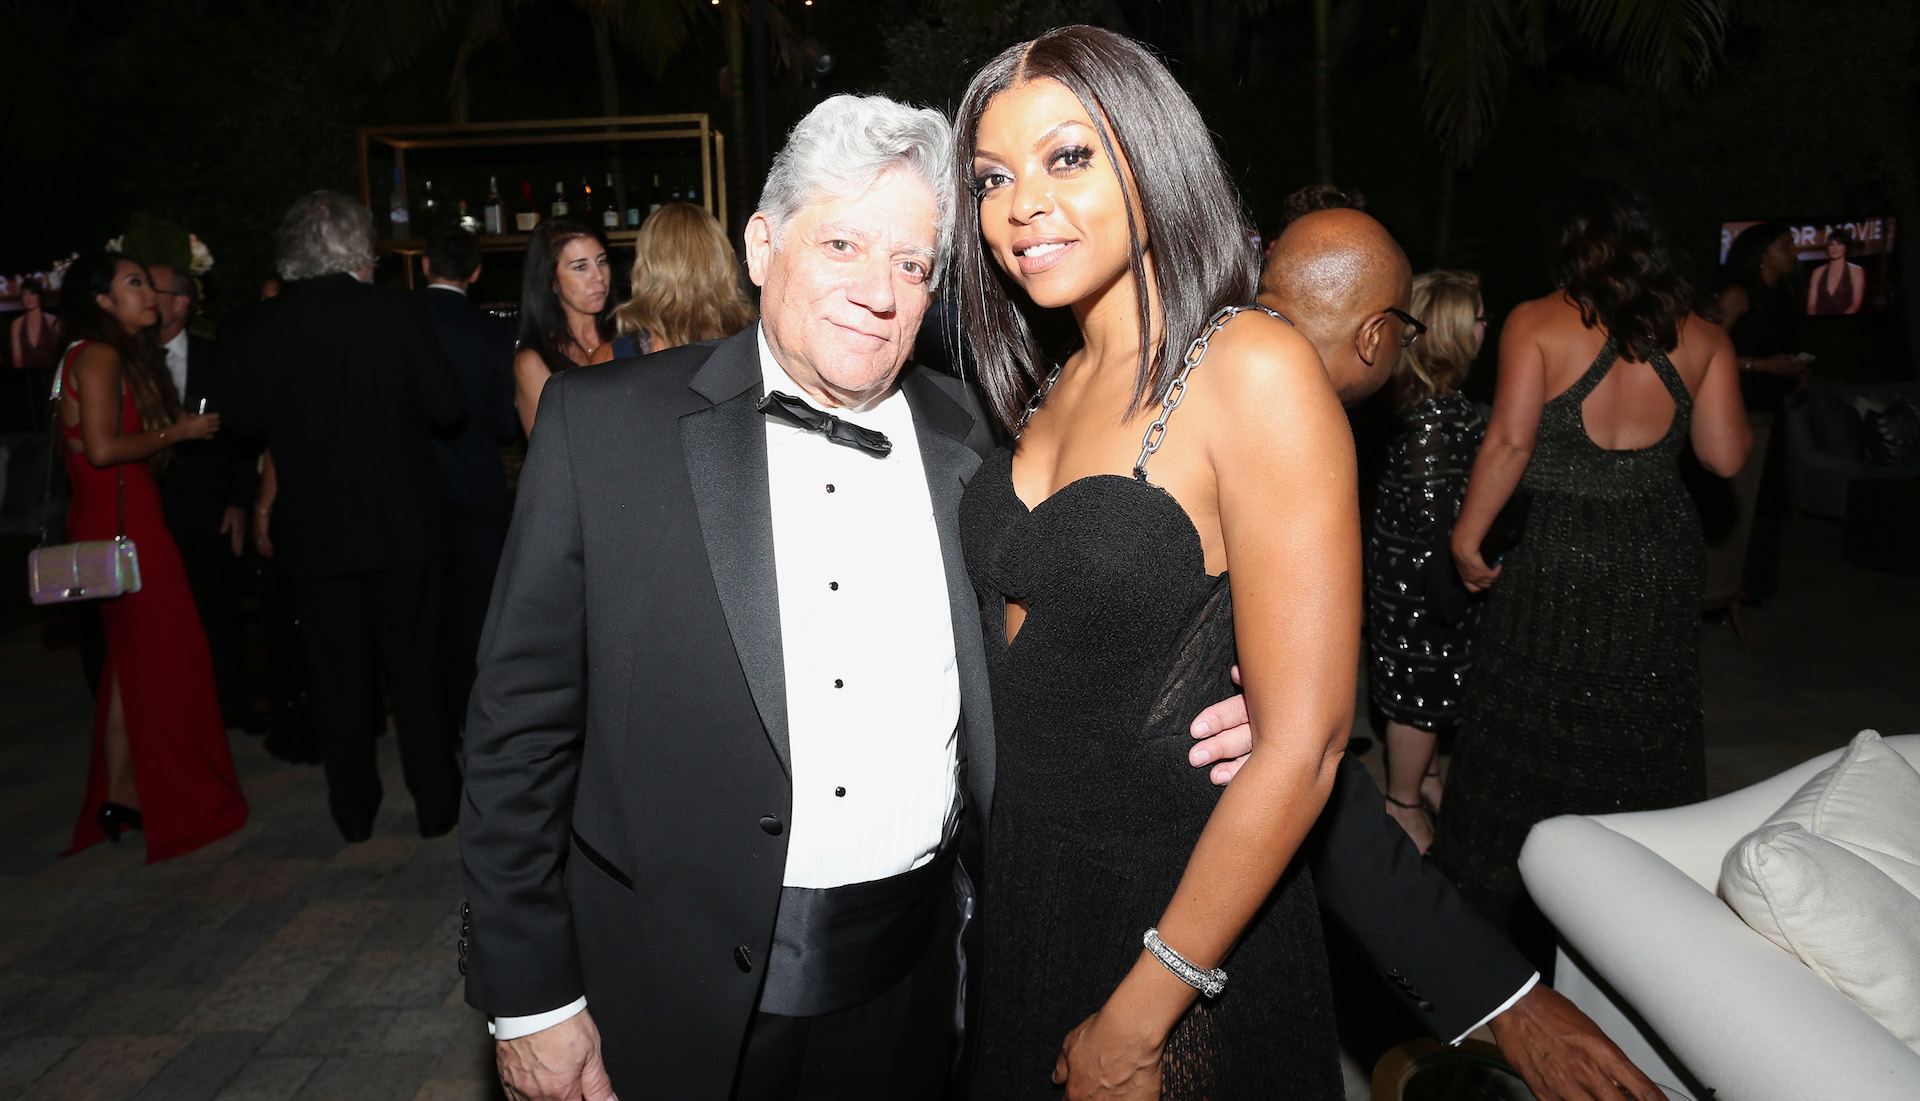 'Shocked, hurt, offended.' Taraji P. Henson responds to news longtime manager Vincent Cirrincione is accused of sexual harassment.